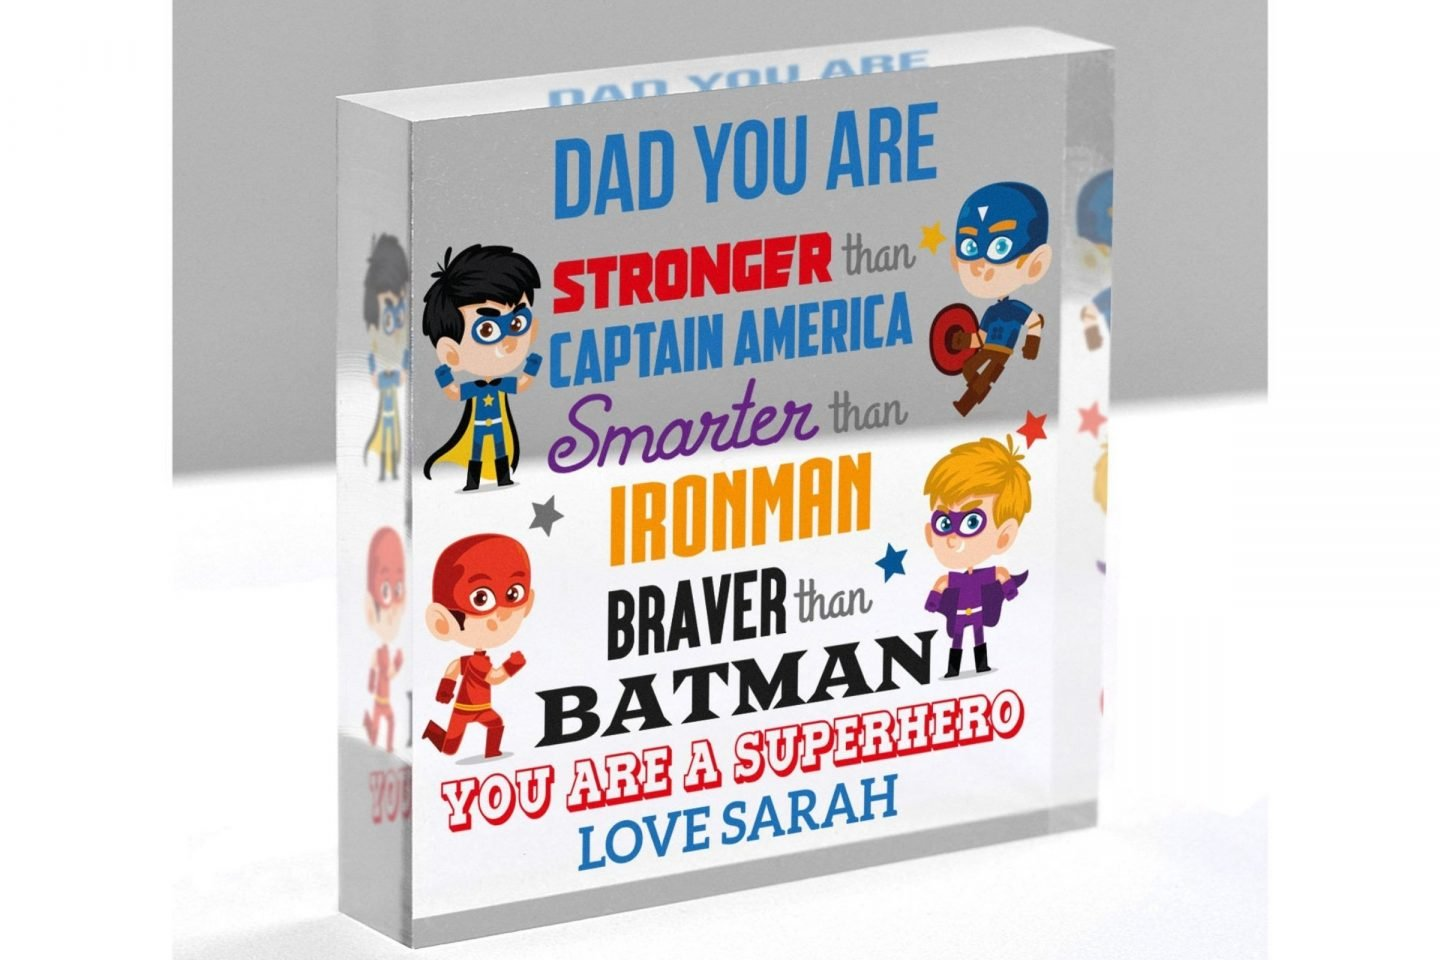 Persoanlised Fathers Day Gifts are a great way to make sure Dad knows he is loved and appreciated on Fathers Day.